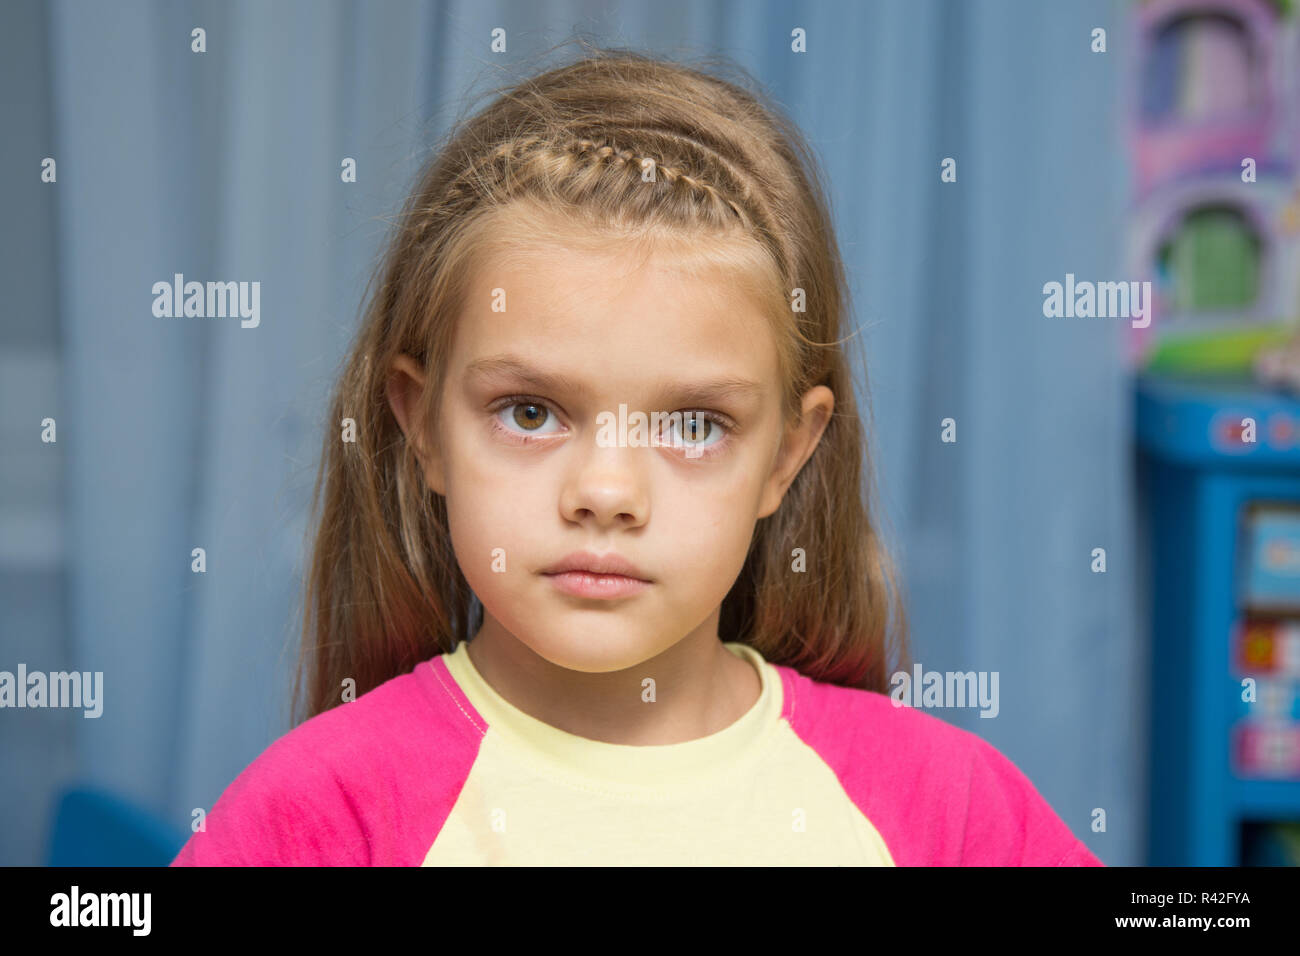 Upset five year old girl with tearful eyes - Stock Image